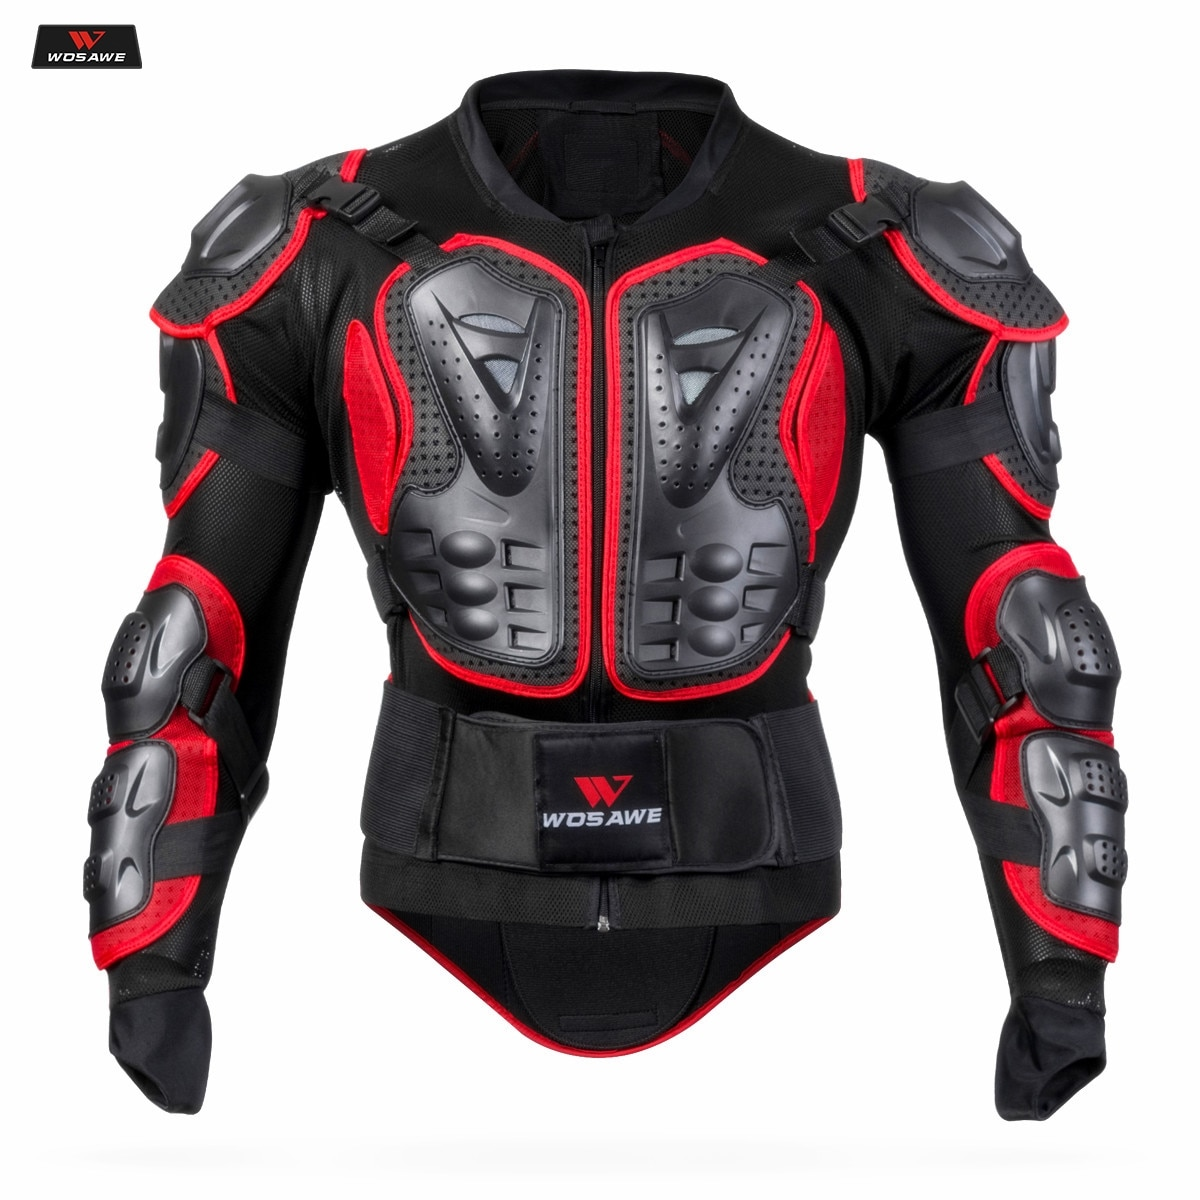 WOSAWE Motorcycle Jacket Men Full Body Armor Jacket Motocross Racing Protective Gear Back Chest Shoullder Elbow Protection wosawe motorcycle jacket full body armor back chest protector motocross racing clothing riding protective gear moto protection